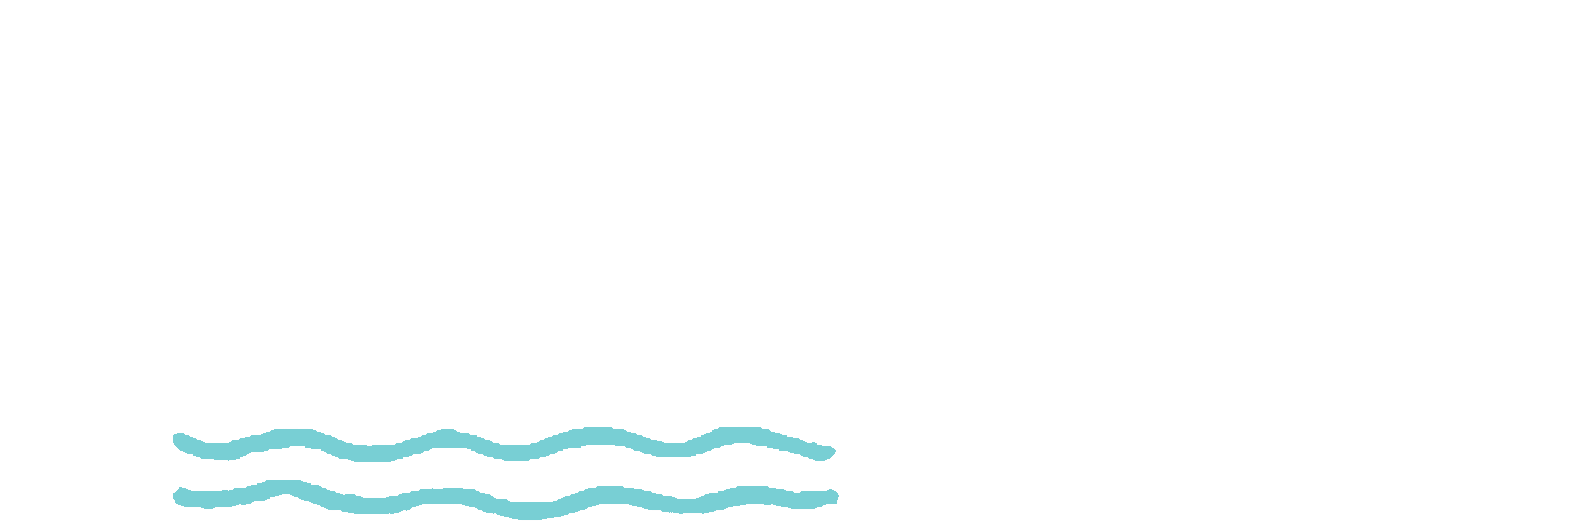 Mohican River Retreat House Logo